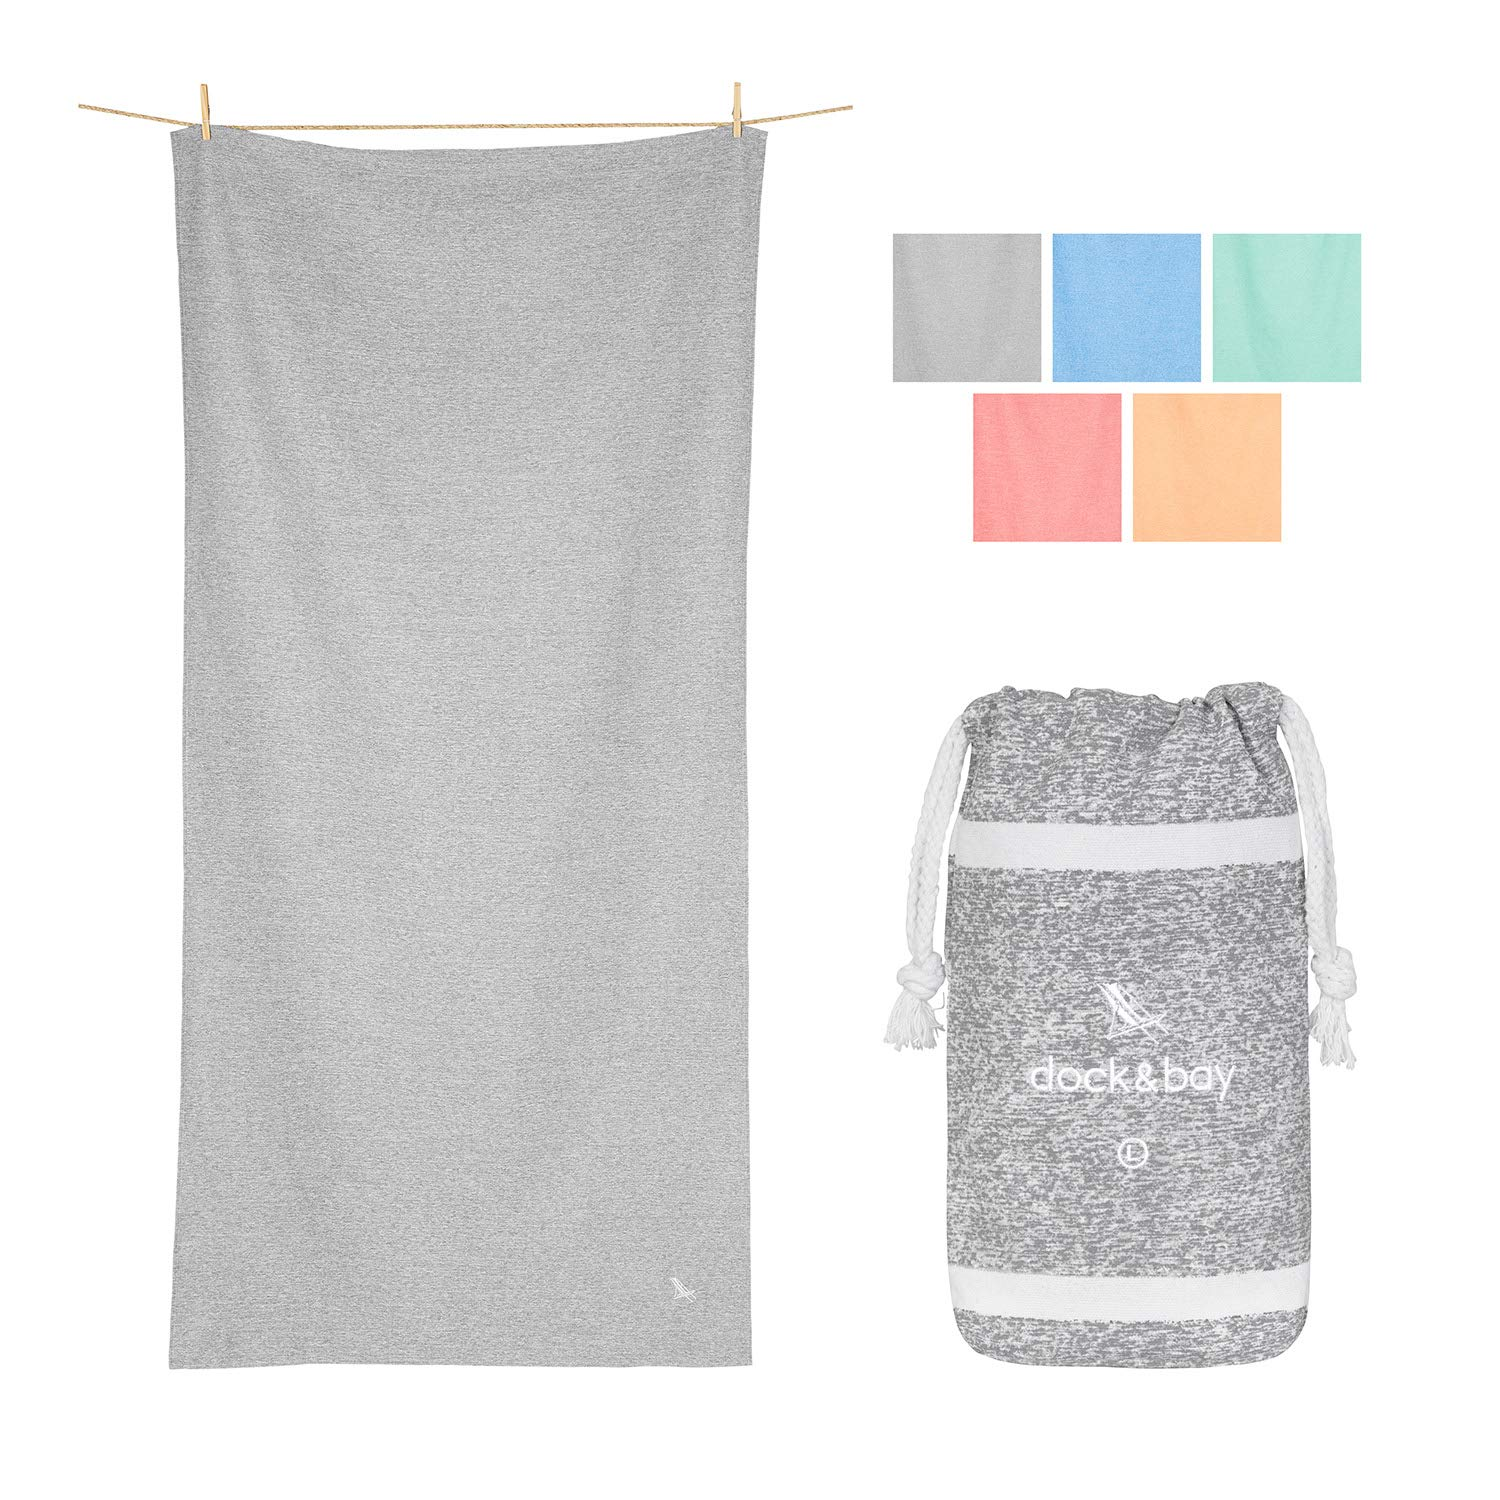 Dock & Bay Microfibre Towels for Yoga Mat - Mountain Grey, 63 x 31 - Fitness, Shower & Travel- Quick Dry, Absorbent for Gym, hot Yoga, Pilates